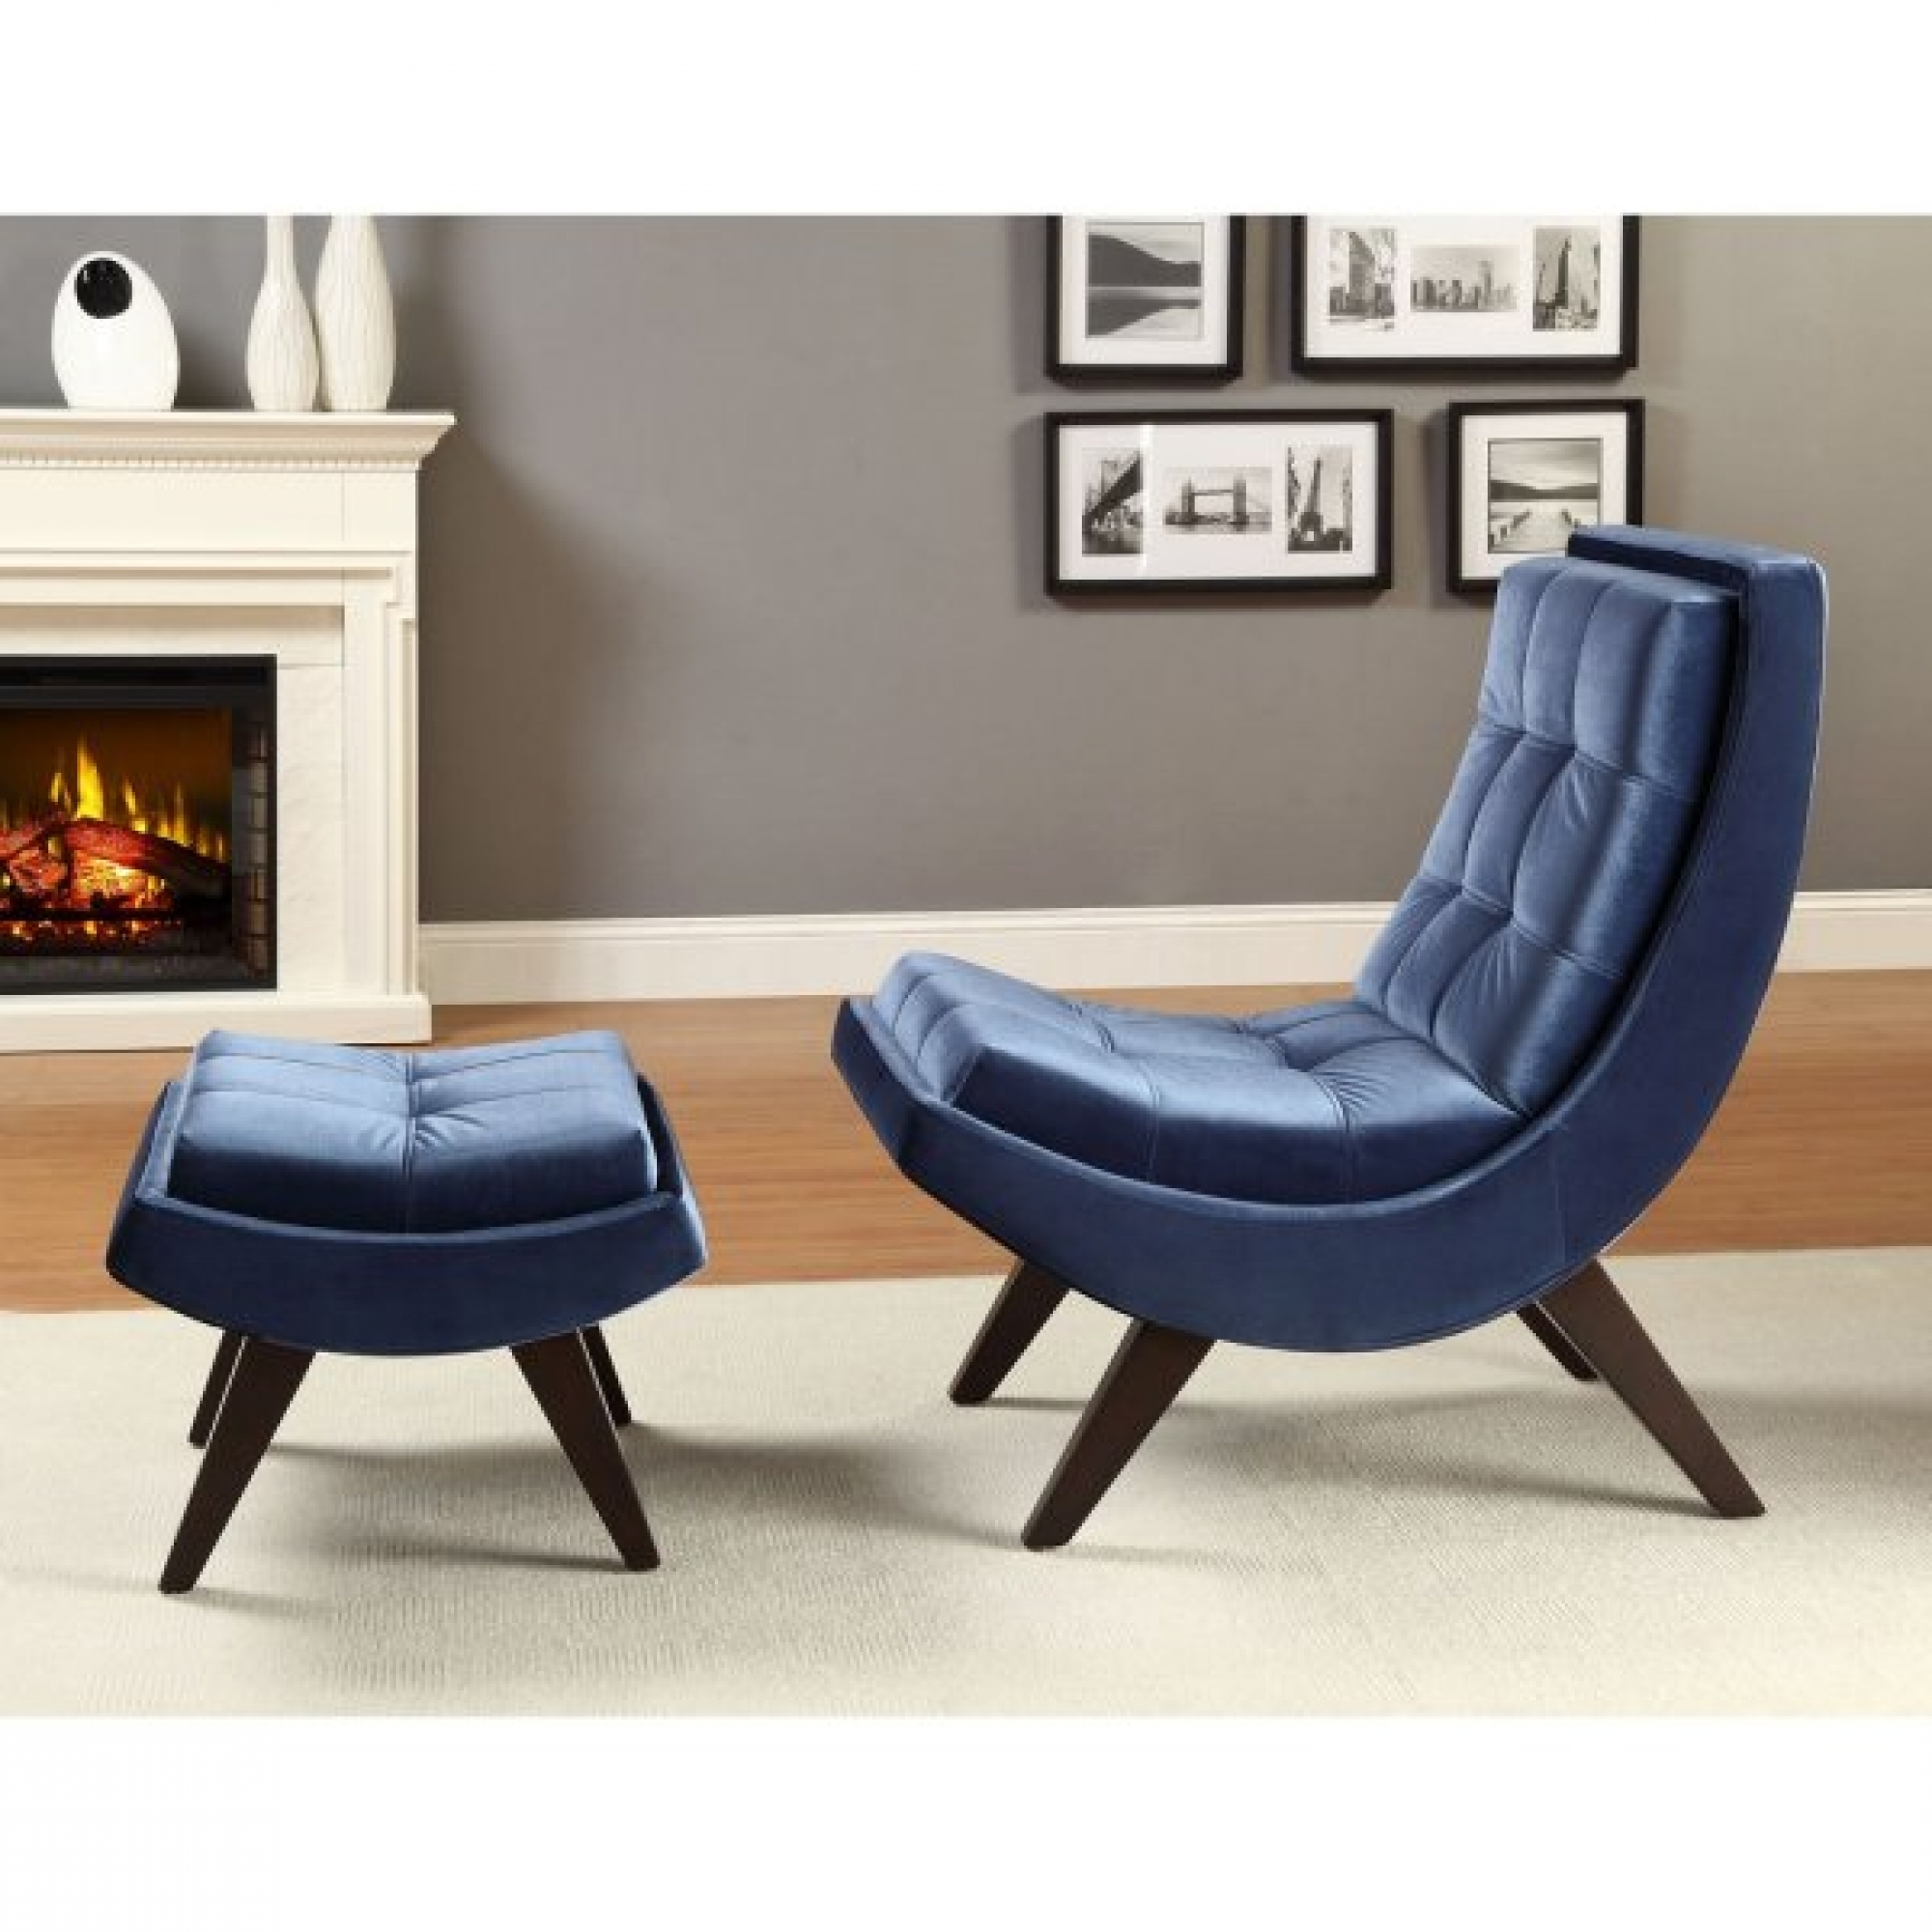 Preferred Awesome Indoor Chaise Lounge Chairs – Best Daily Home Design Ideas In Small Chaise Lounge Chairs (View 5 of 15)